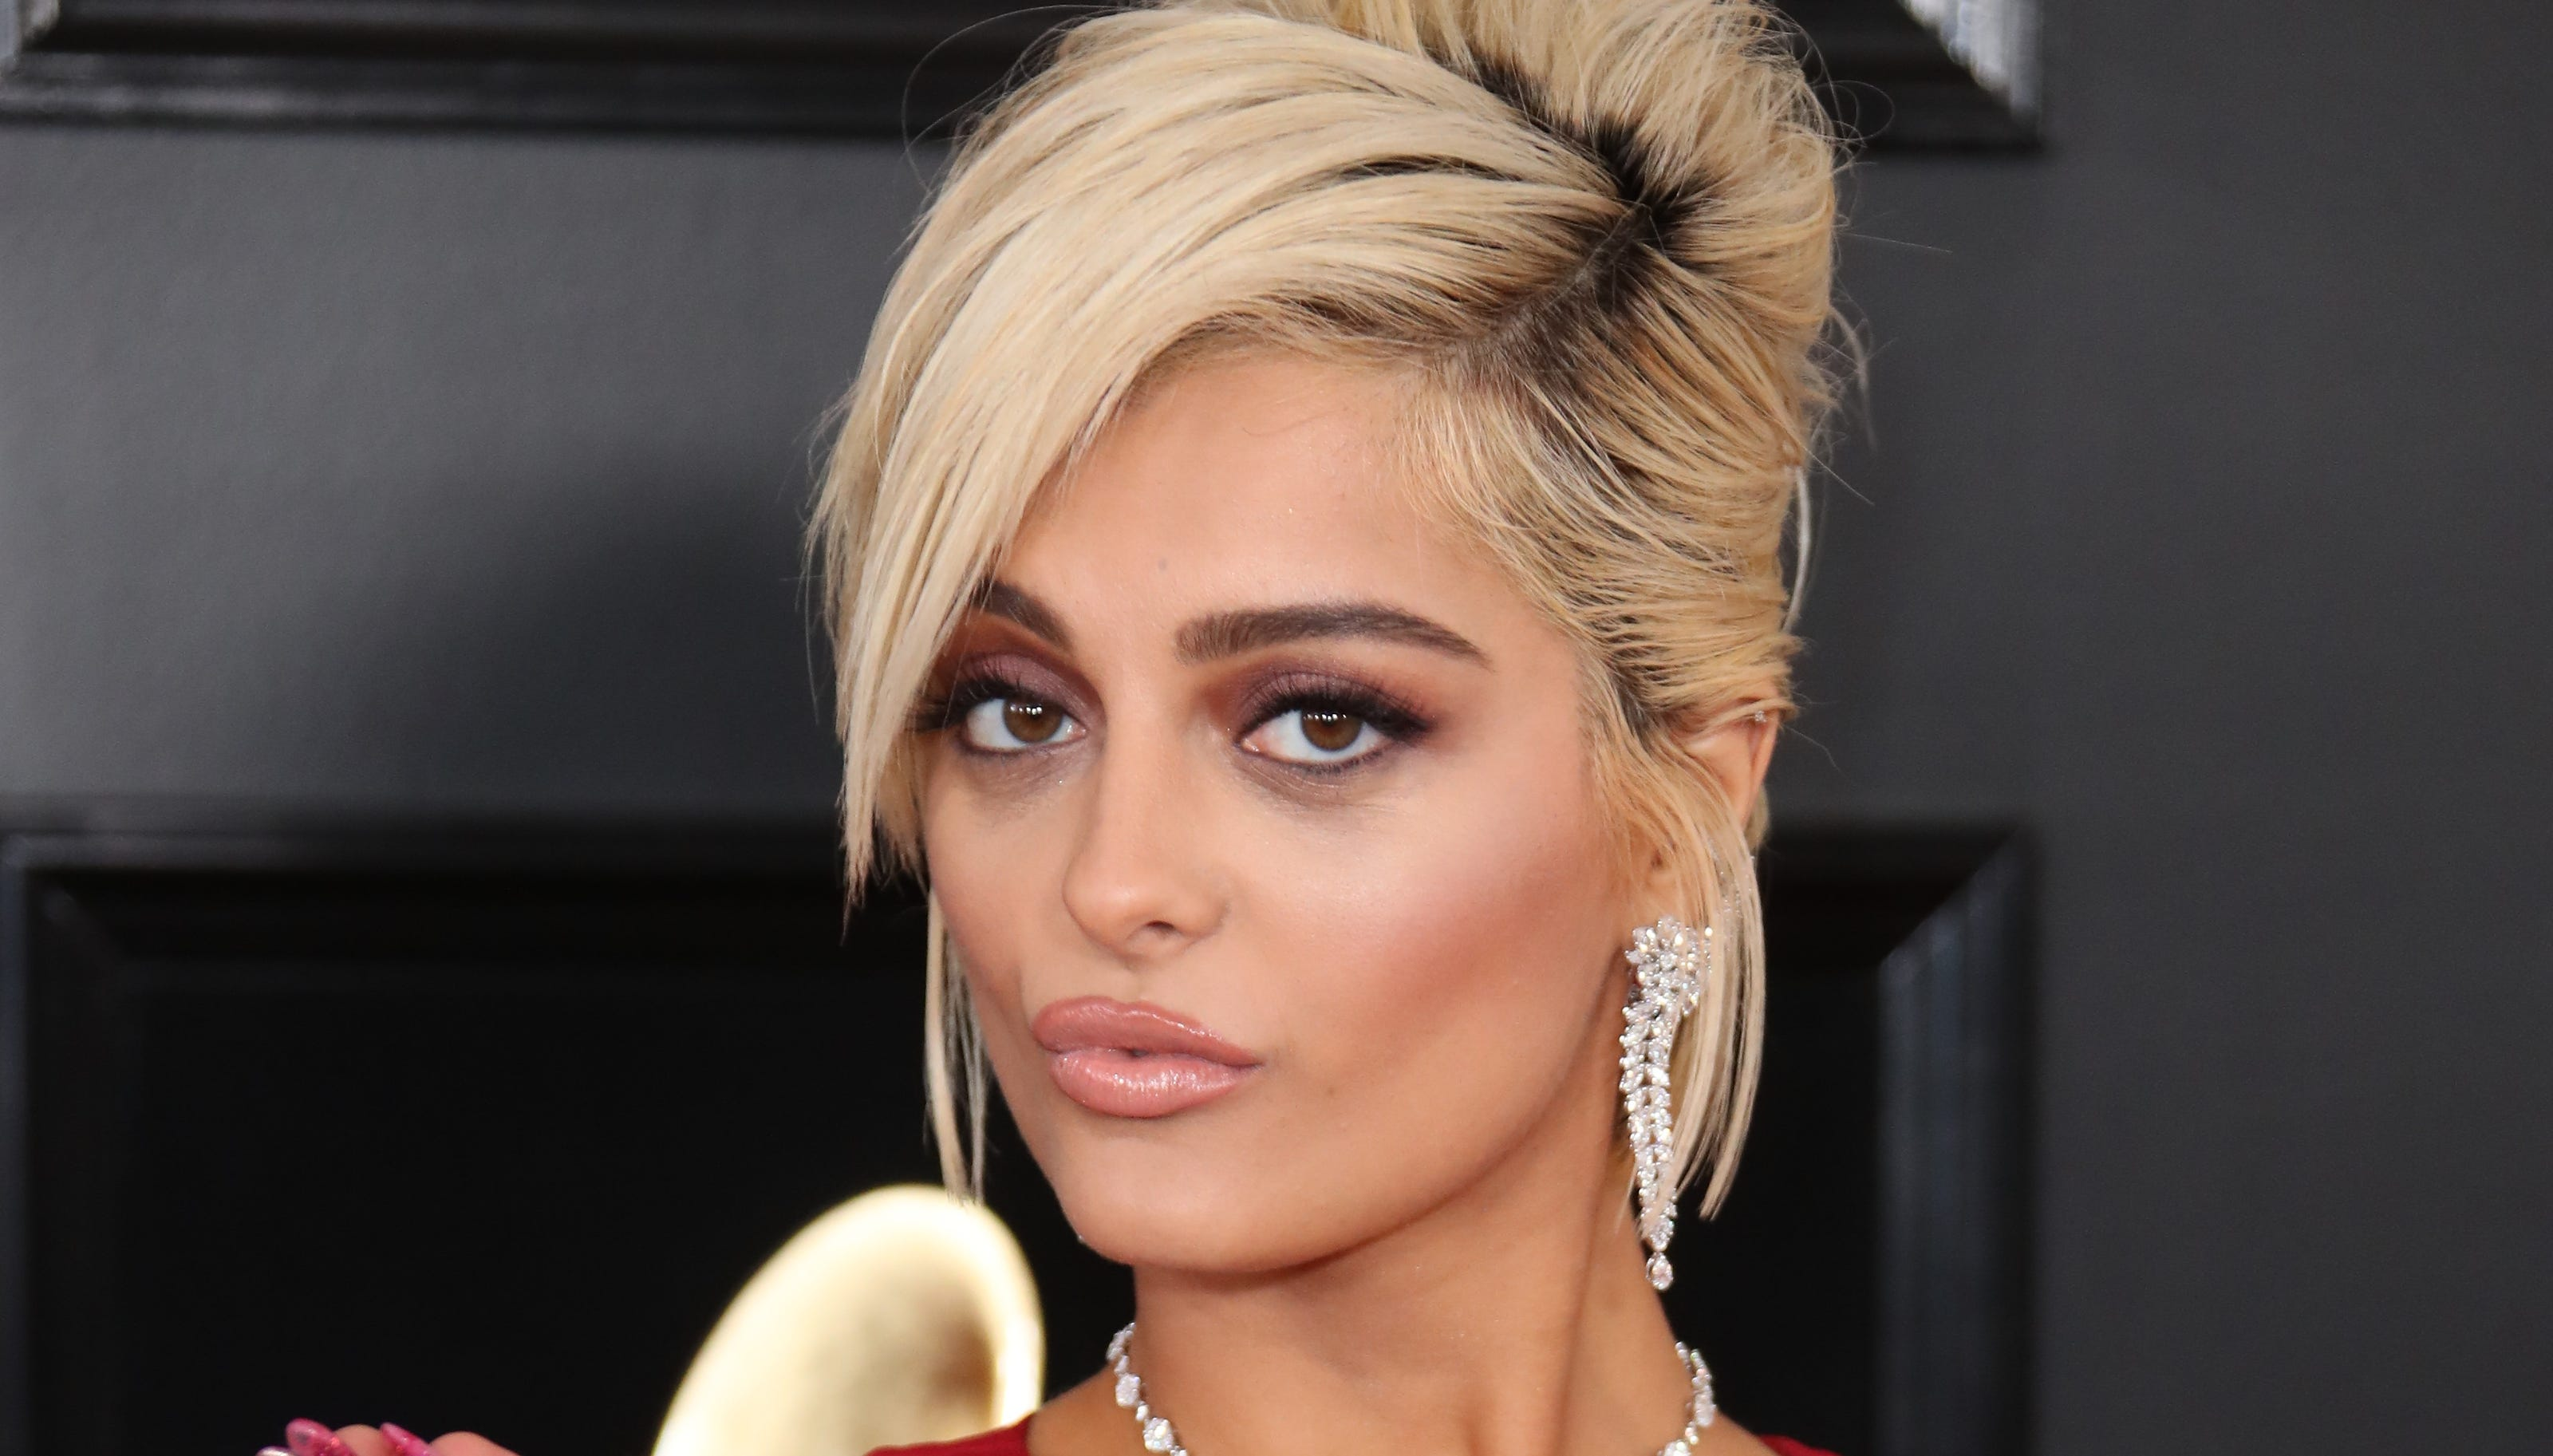 Eccezionale Bebe Rexha posts 'real,' unedited bikini photo on Instagram VP78